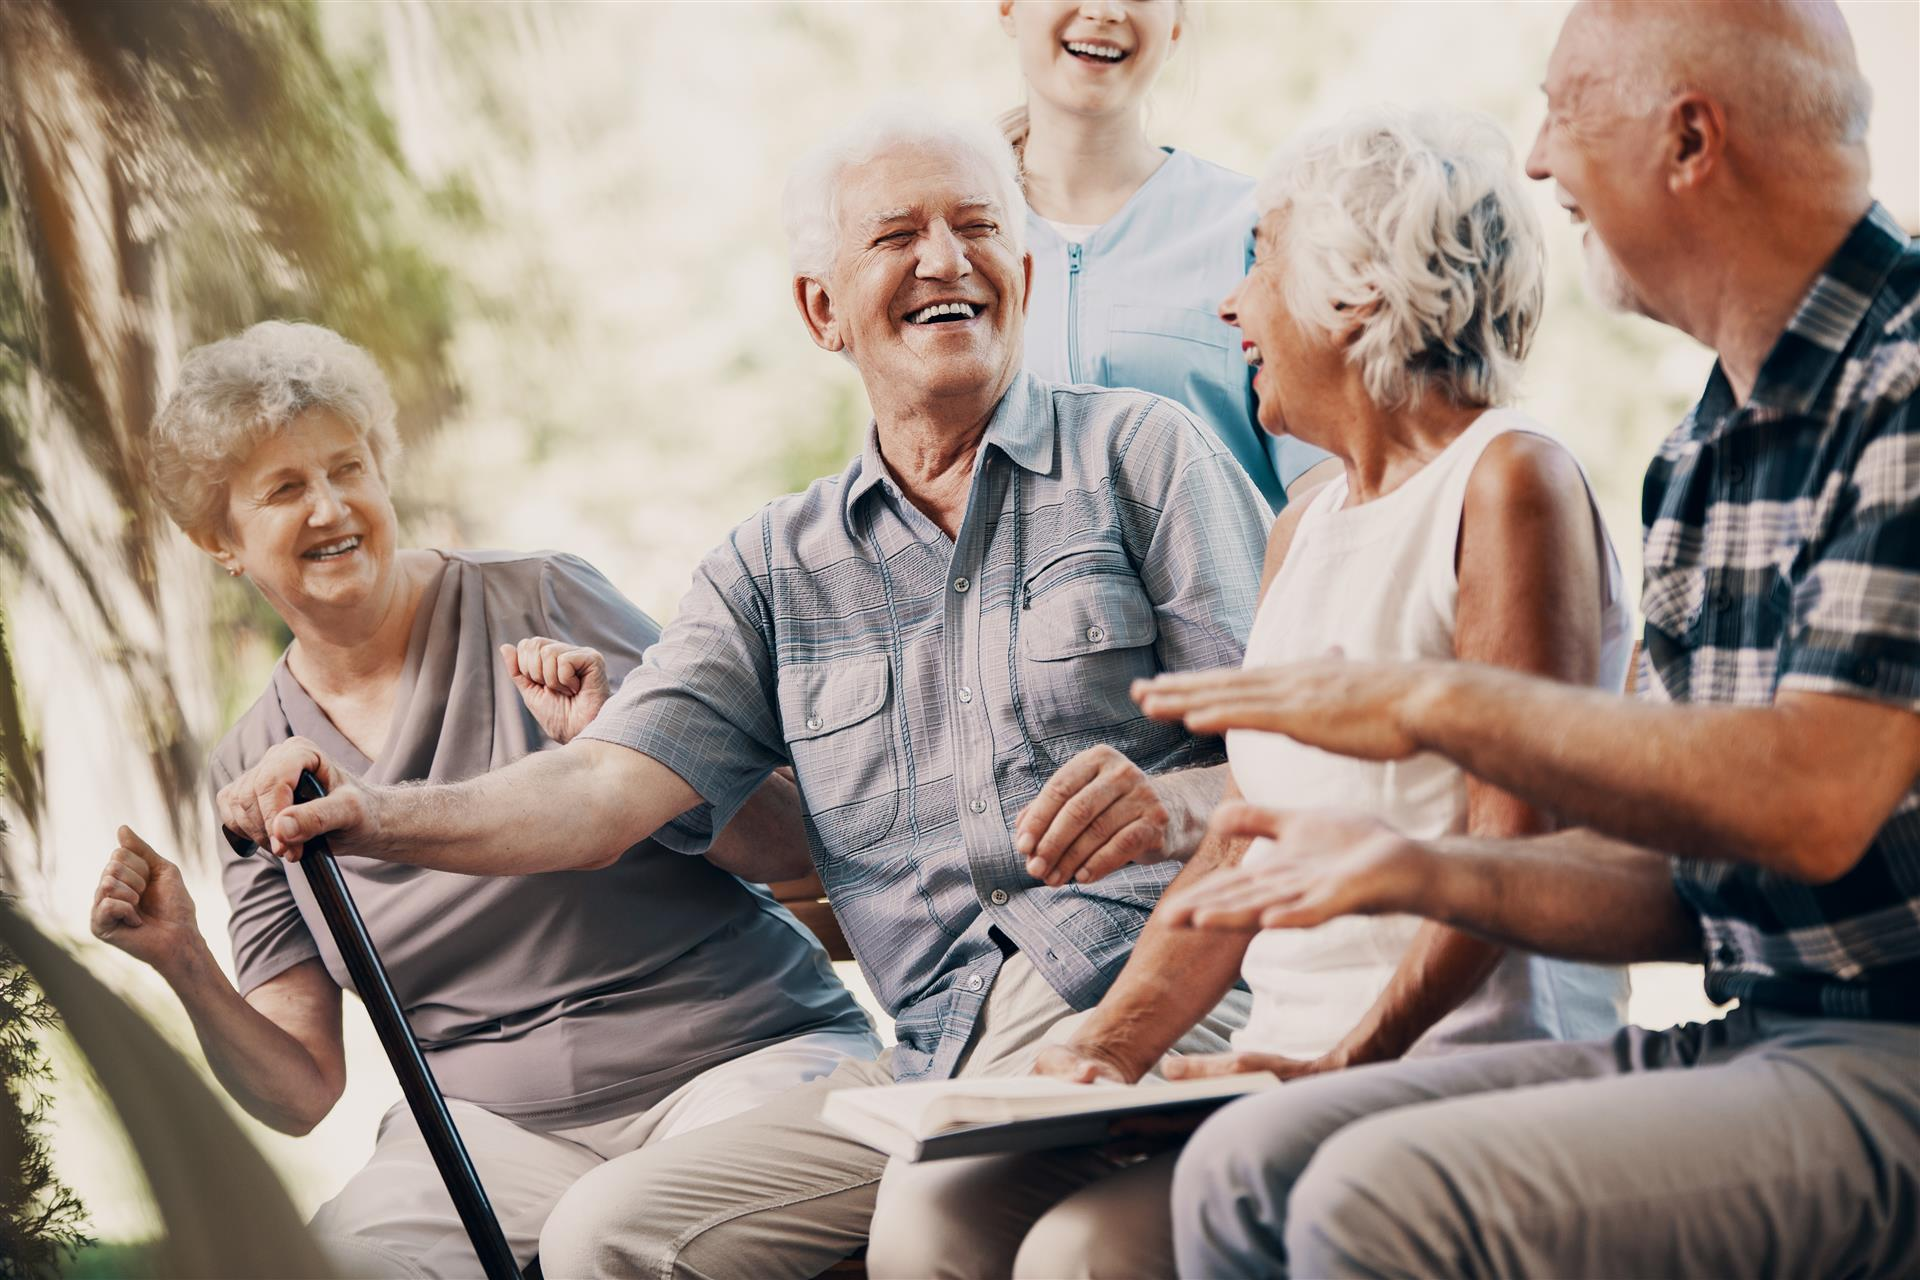 3 Ways Seniors Can Network and Find New Friends